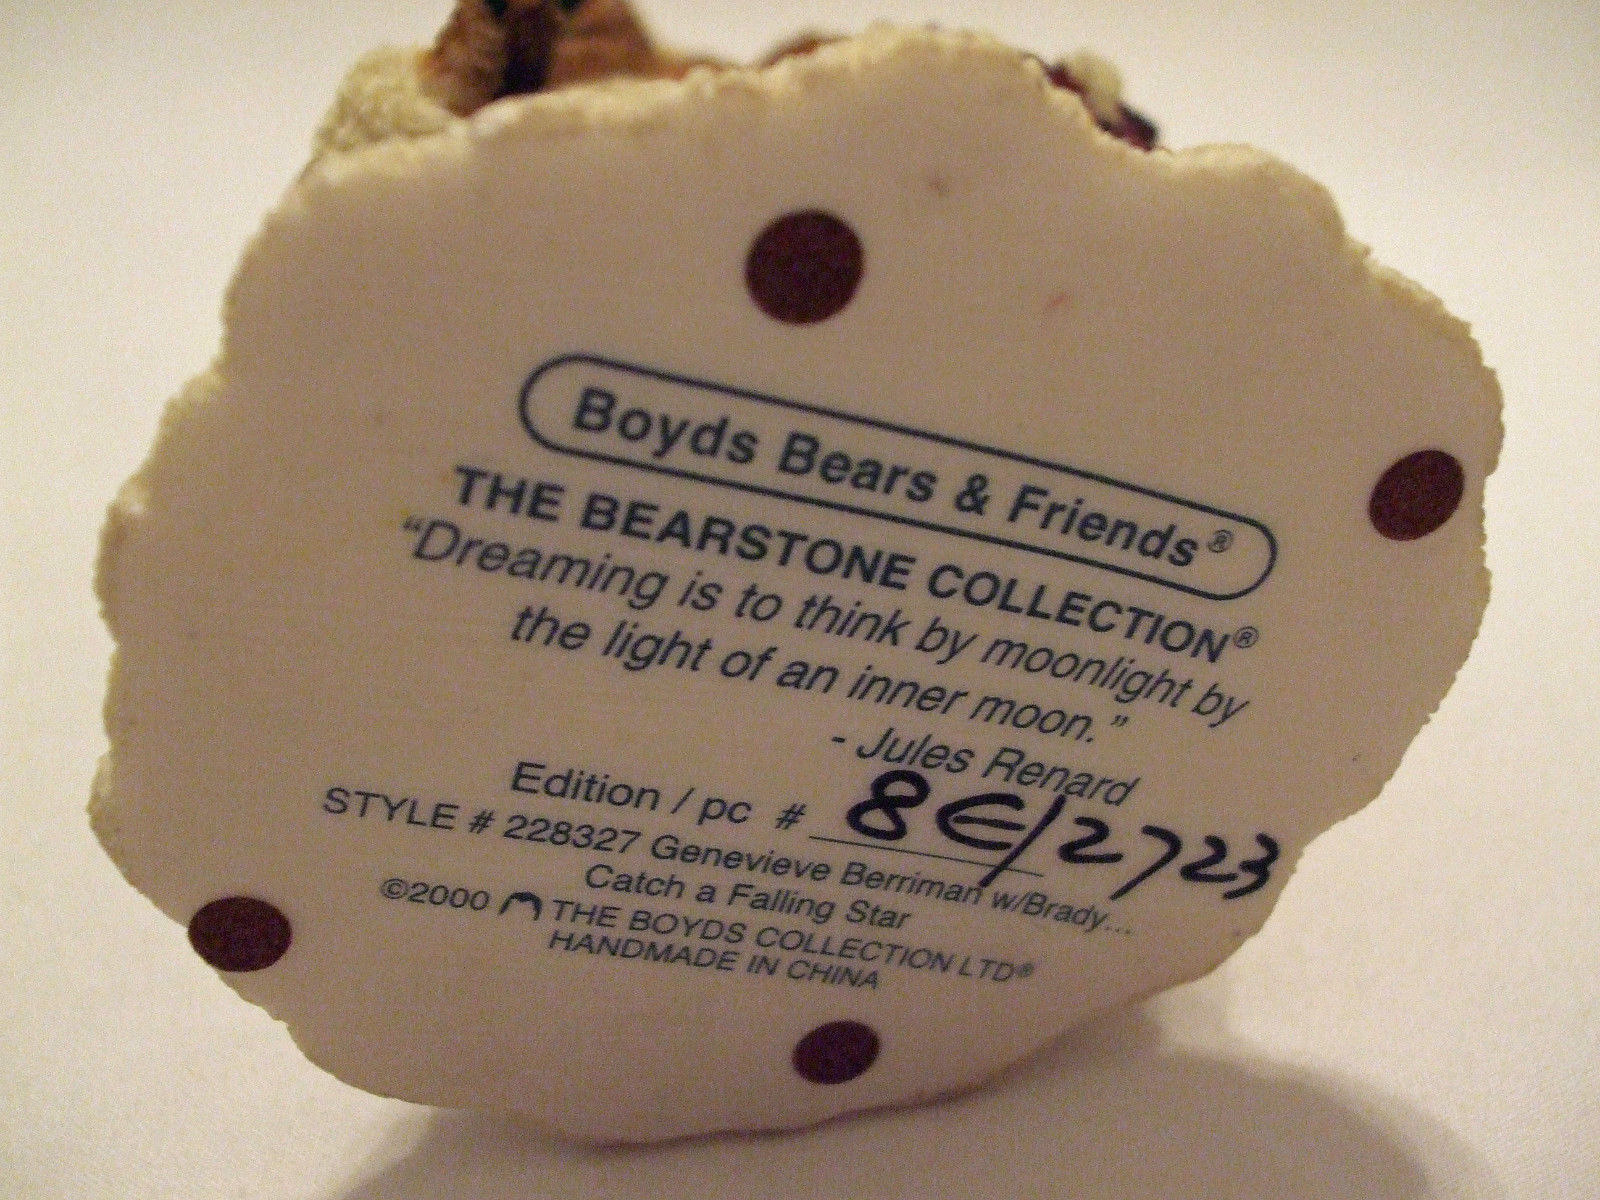 "Boyds ""BEARS & FRIENDS"" The Bearstone Collection - Style #228327"